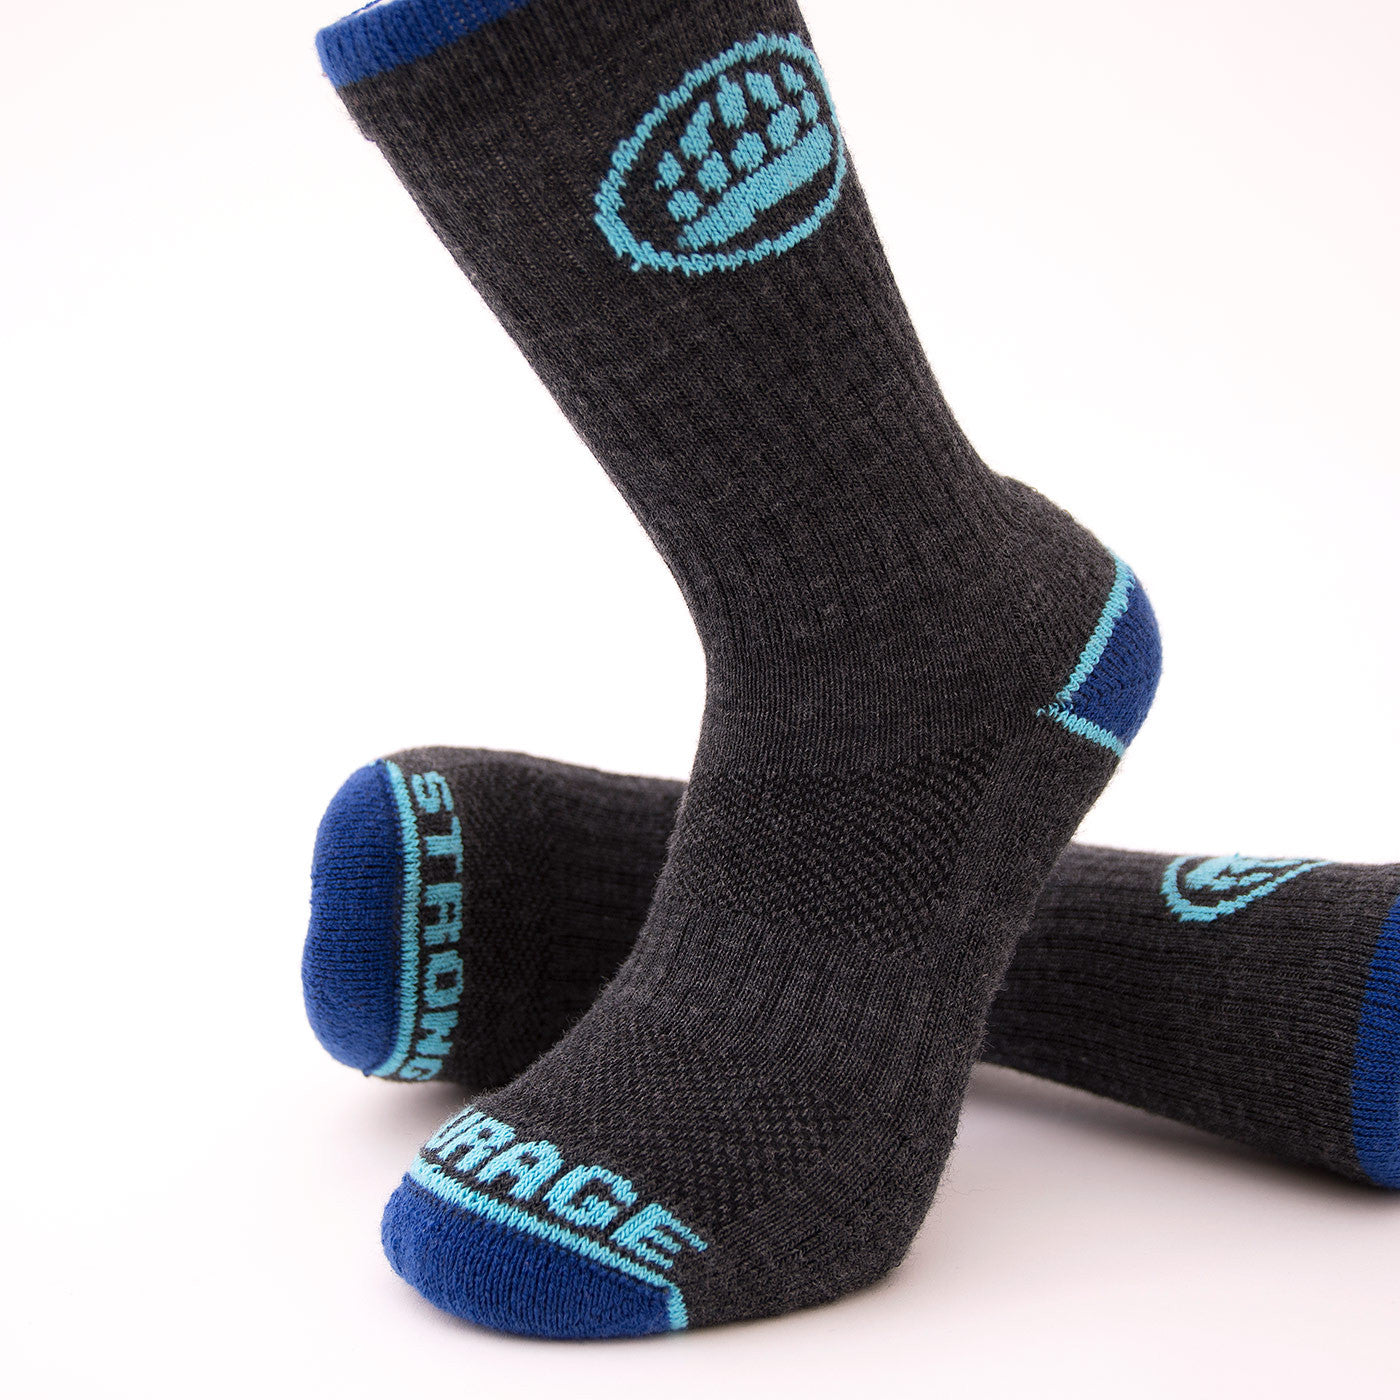 Men's Signature Socks for SickKids